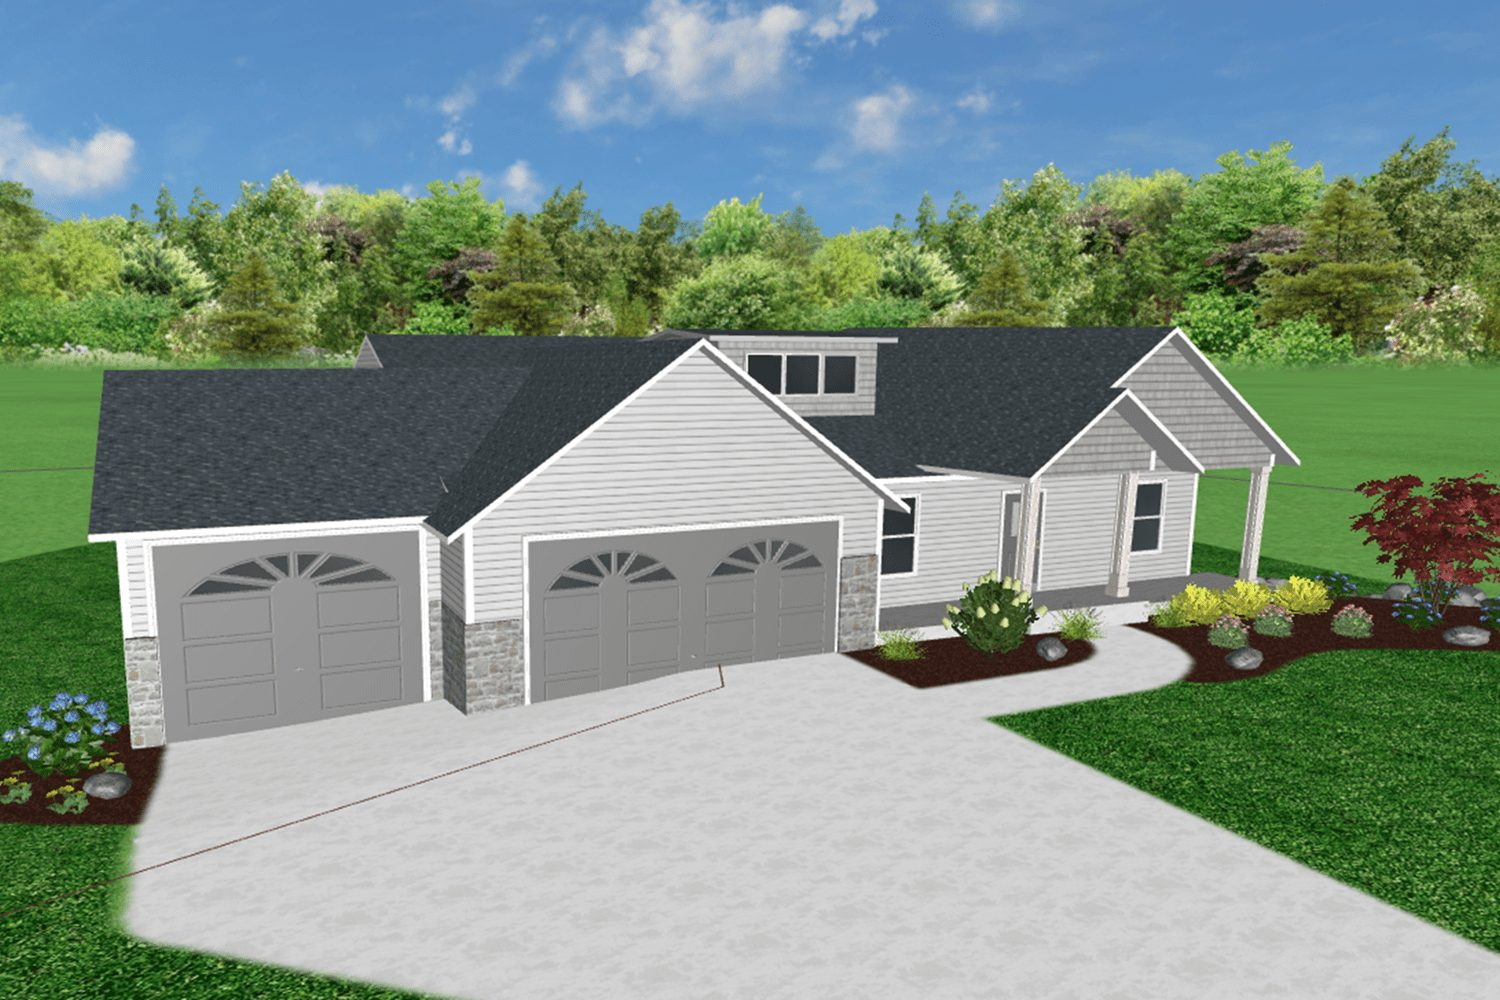 Landscaping, Hydroseed Package for New Homes - ProMow Landscaping of Byron Center